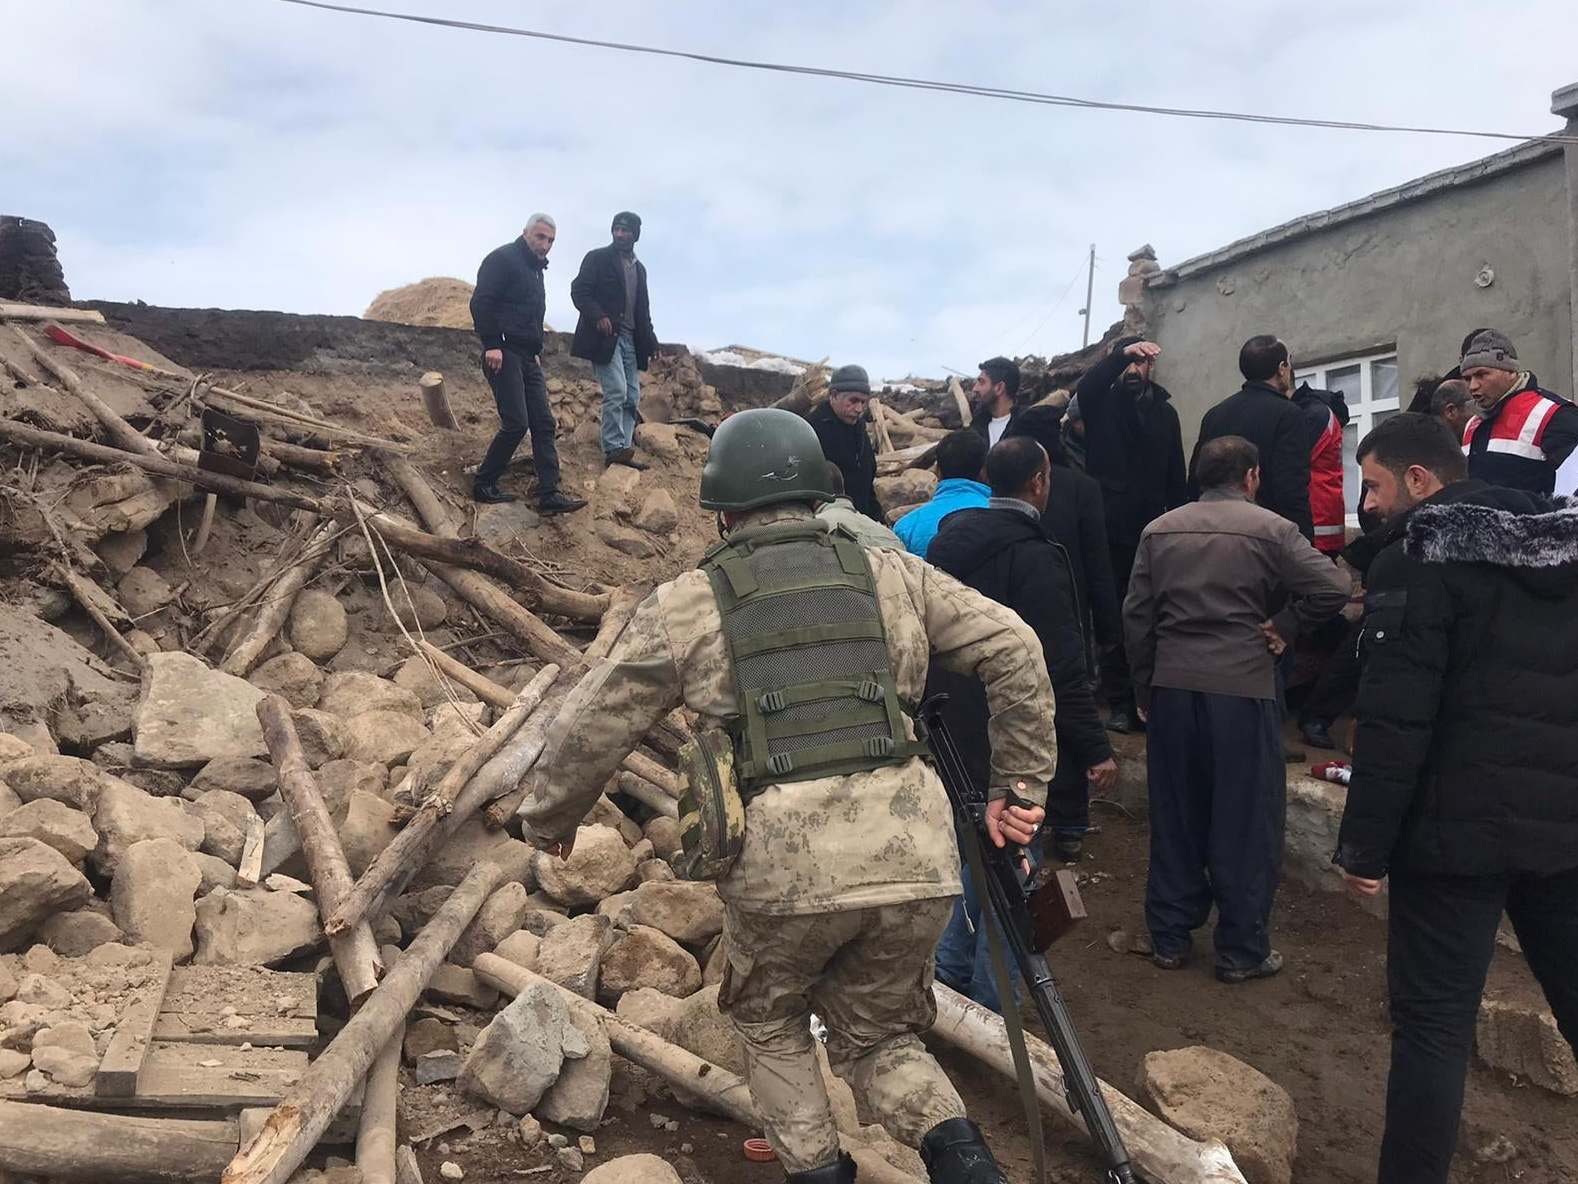 Earthquake in Turkey: eight died during a magnitude 5.7 earthquake near the border with Iran